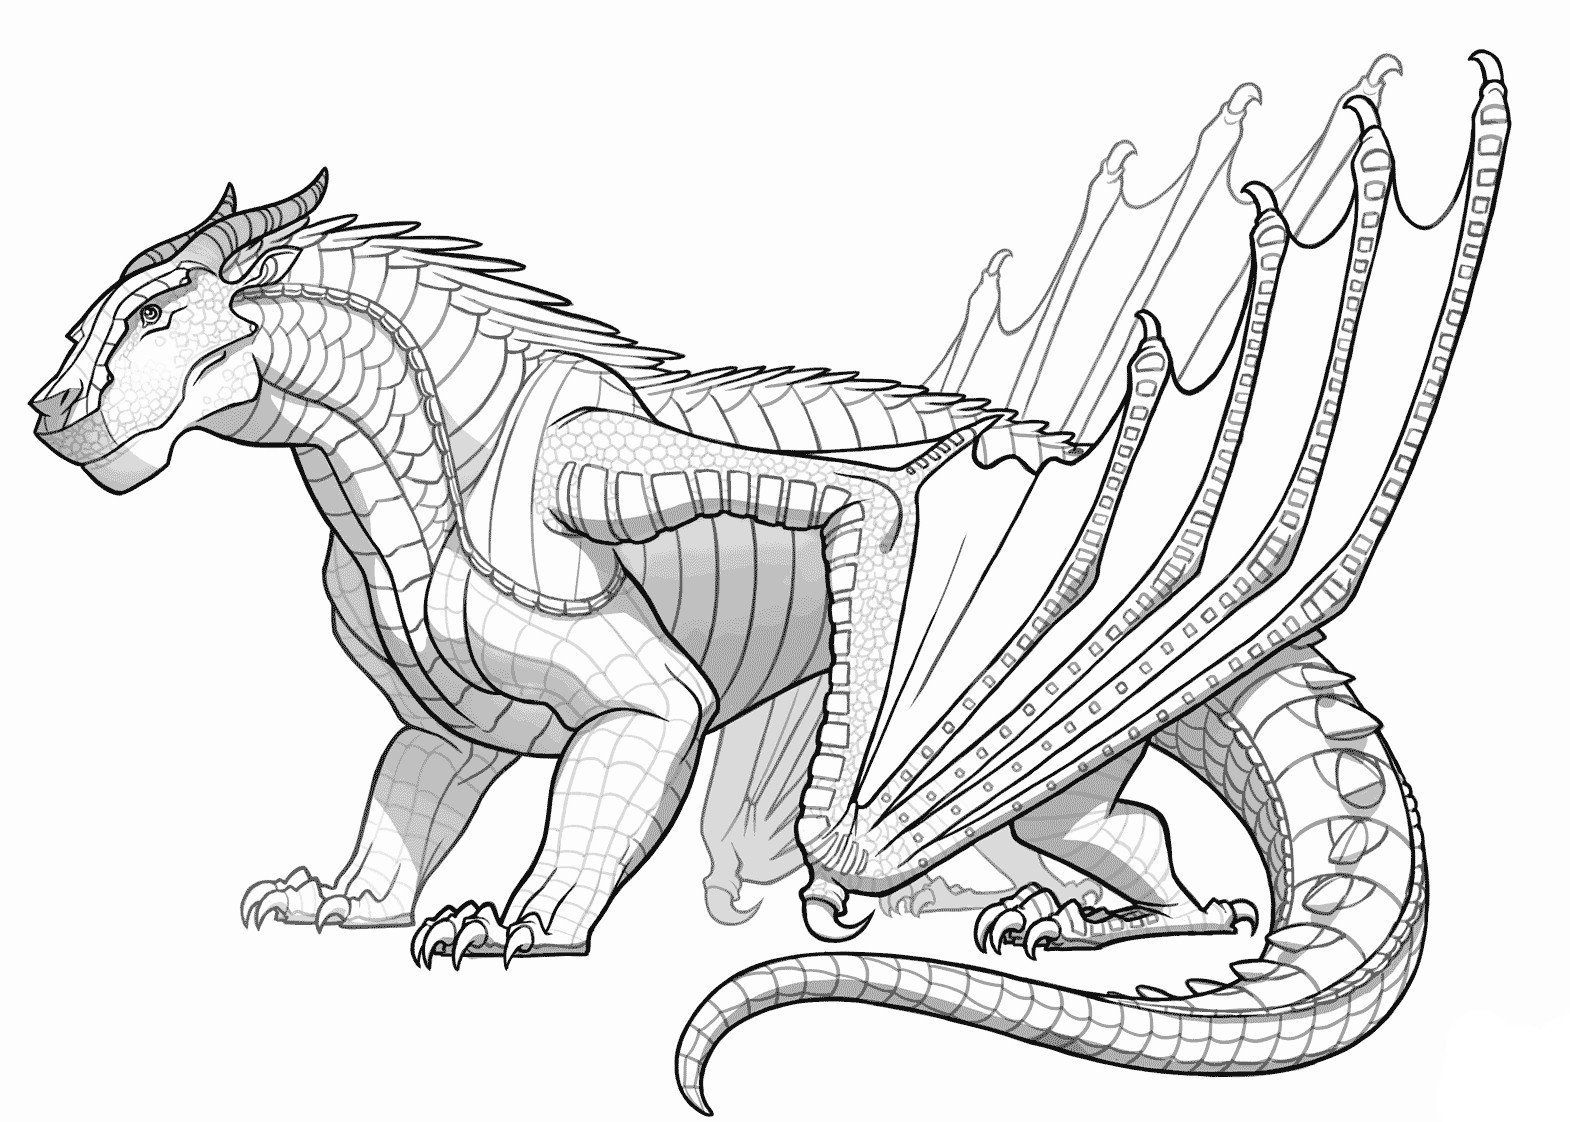 Dragon Coloring Pages For Adults Fresh Dragon Coloring Pages For Adults Best Coloring Pag In 2020 Zoo Animal Coloring Pages Pokemon Coloring Pages Dragon Coloring Page